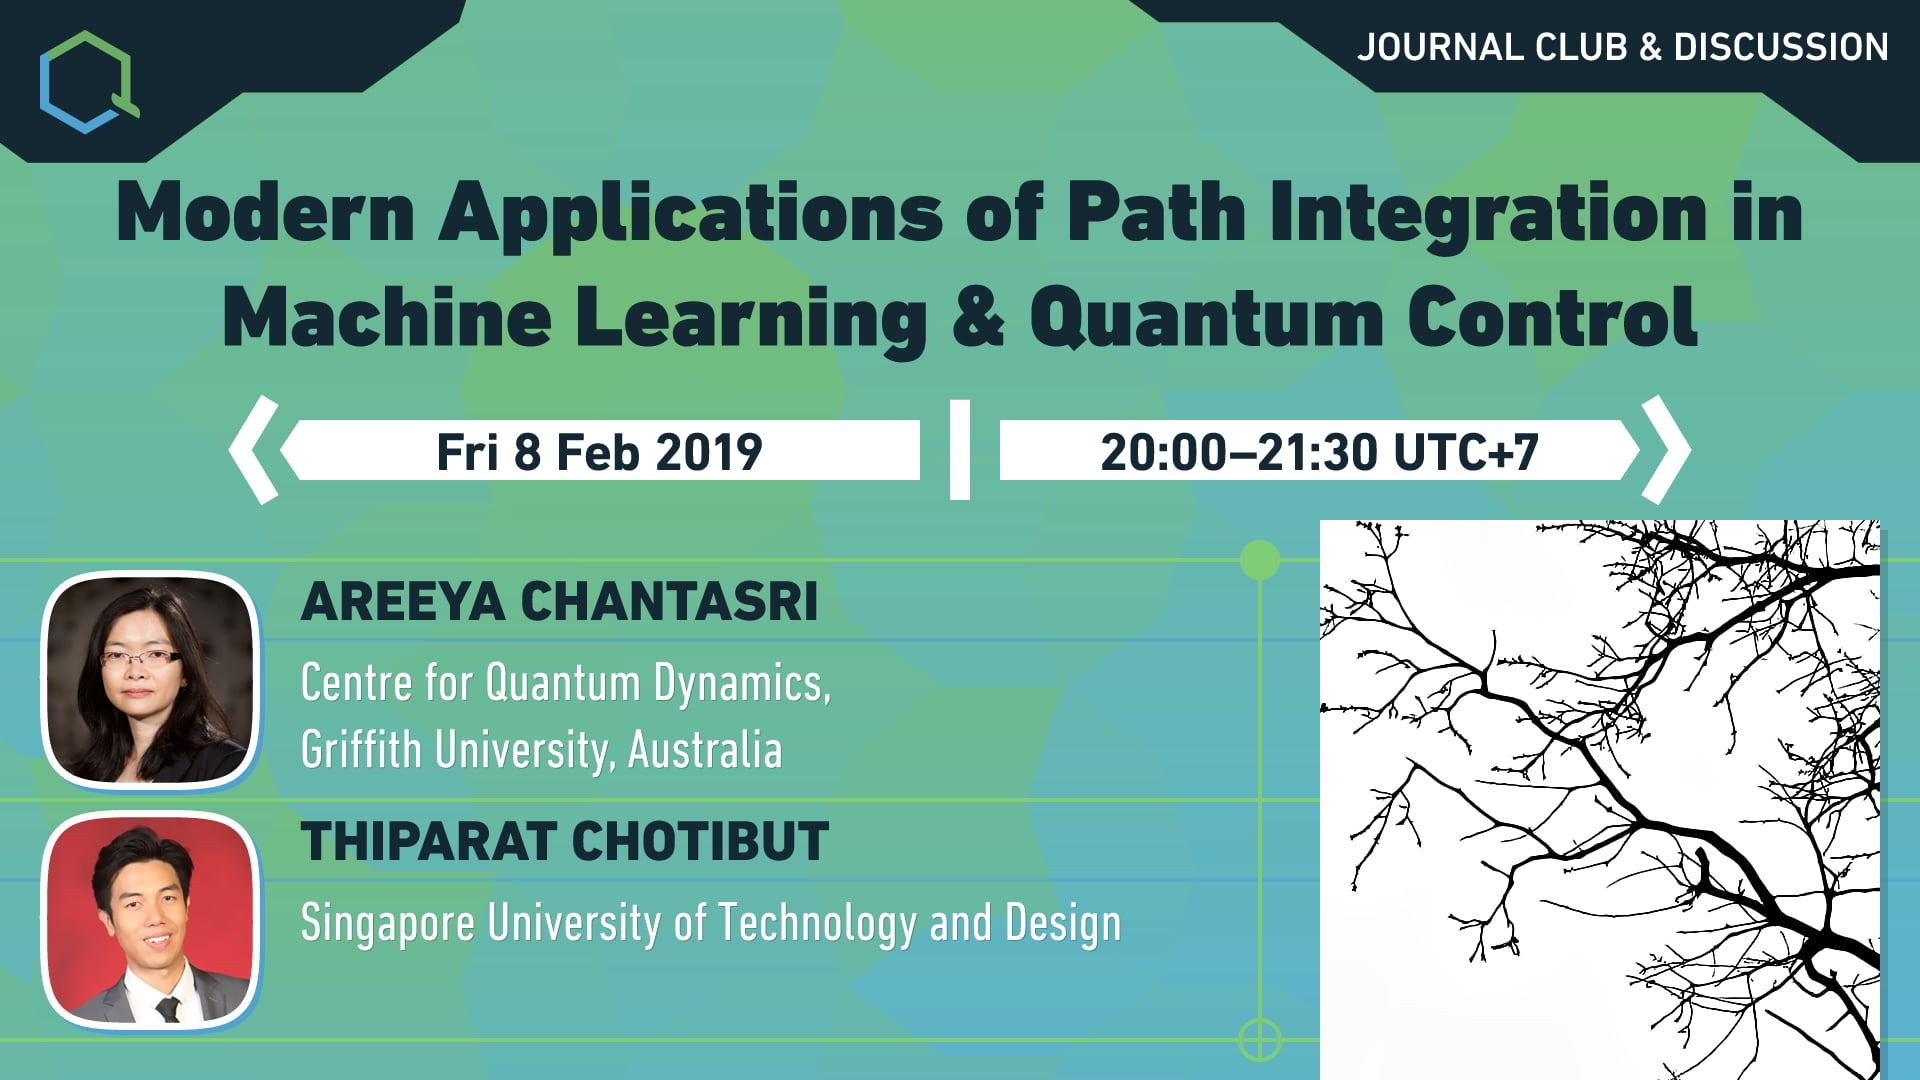 Modern Applications of Path Integration in Machine Learning and Quantum Control